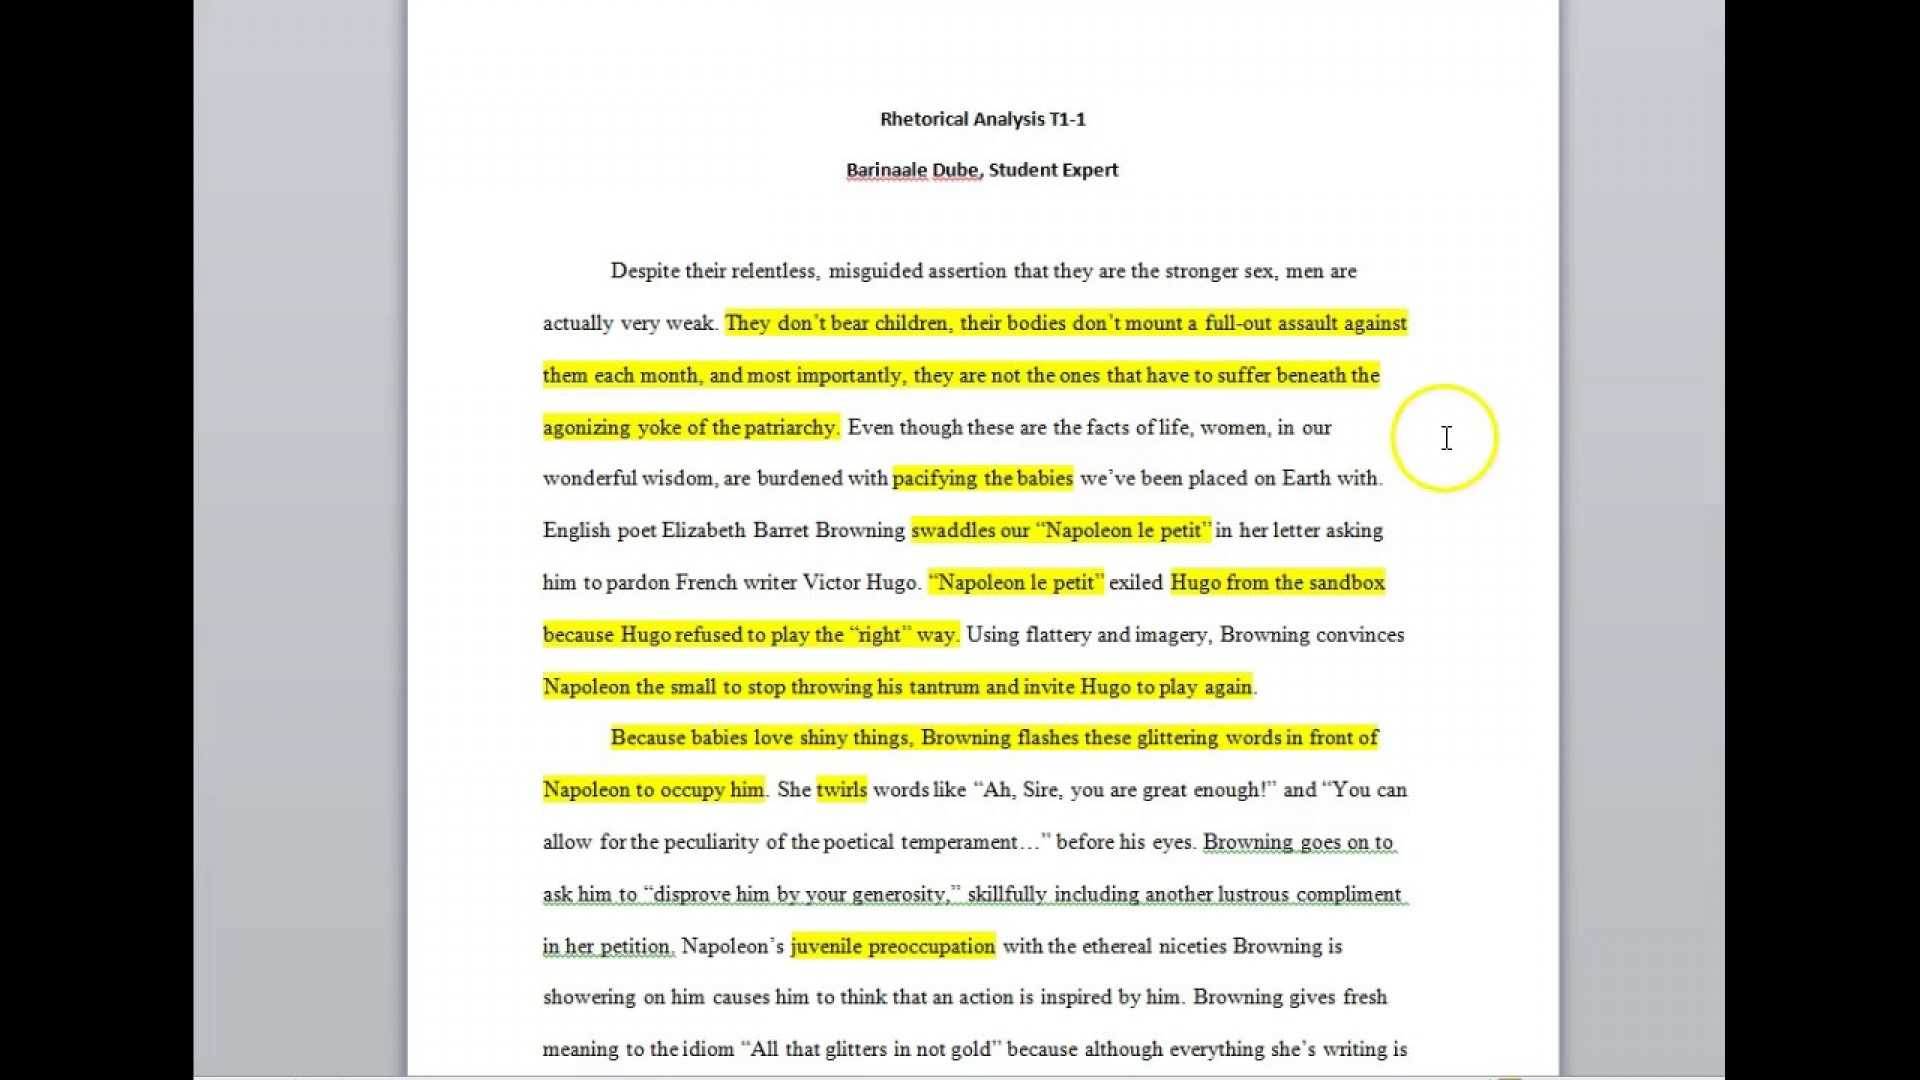 010 Define Rhetorical Analysis Essay How To Write Maxresde Example Introduction Conclusion Sat On An Image Advertisement For College Outline Ap Dreaded Definition Meaning 1920